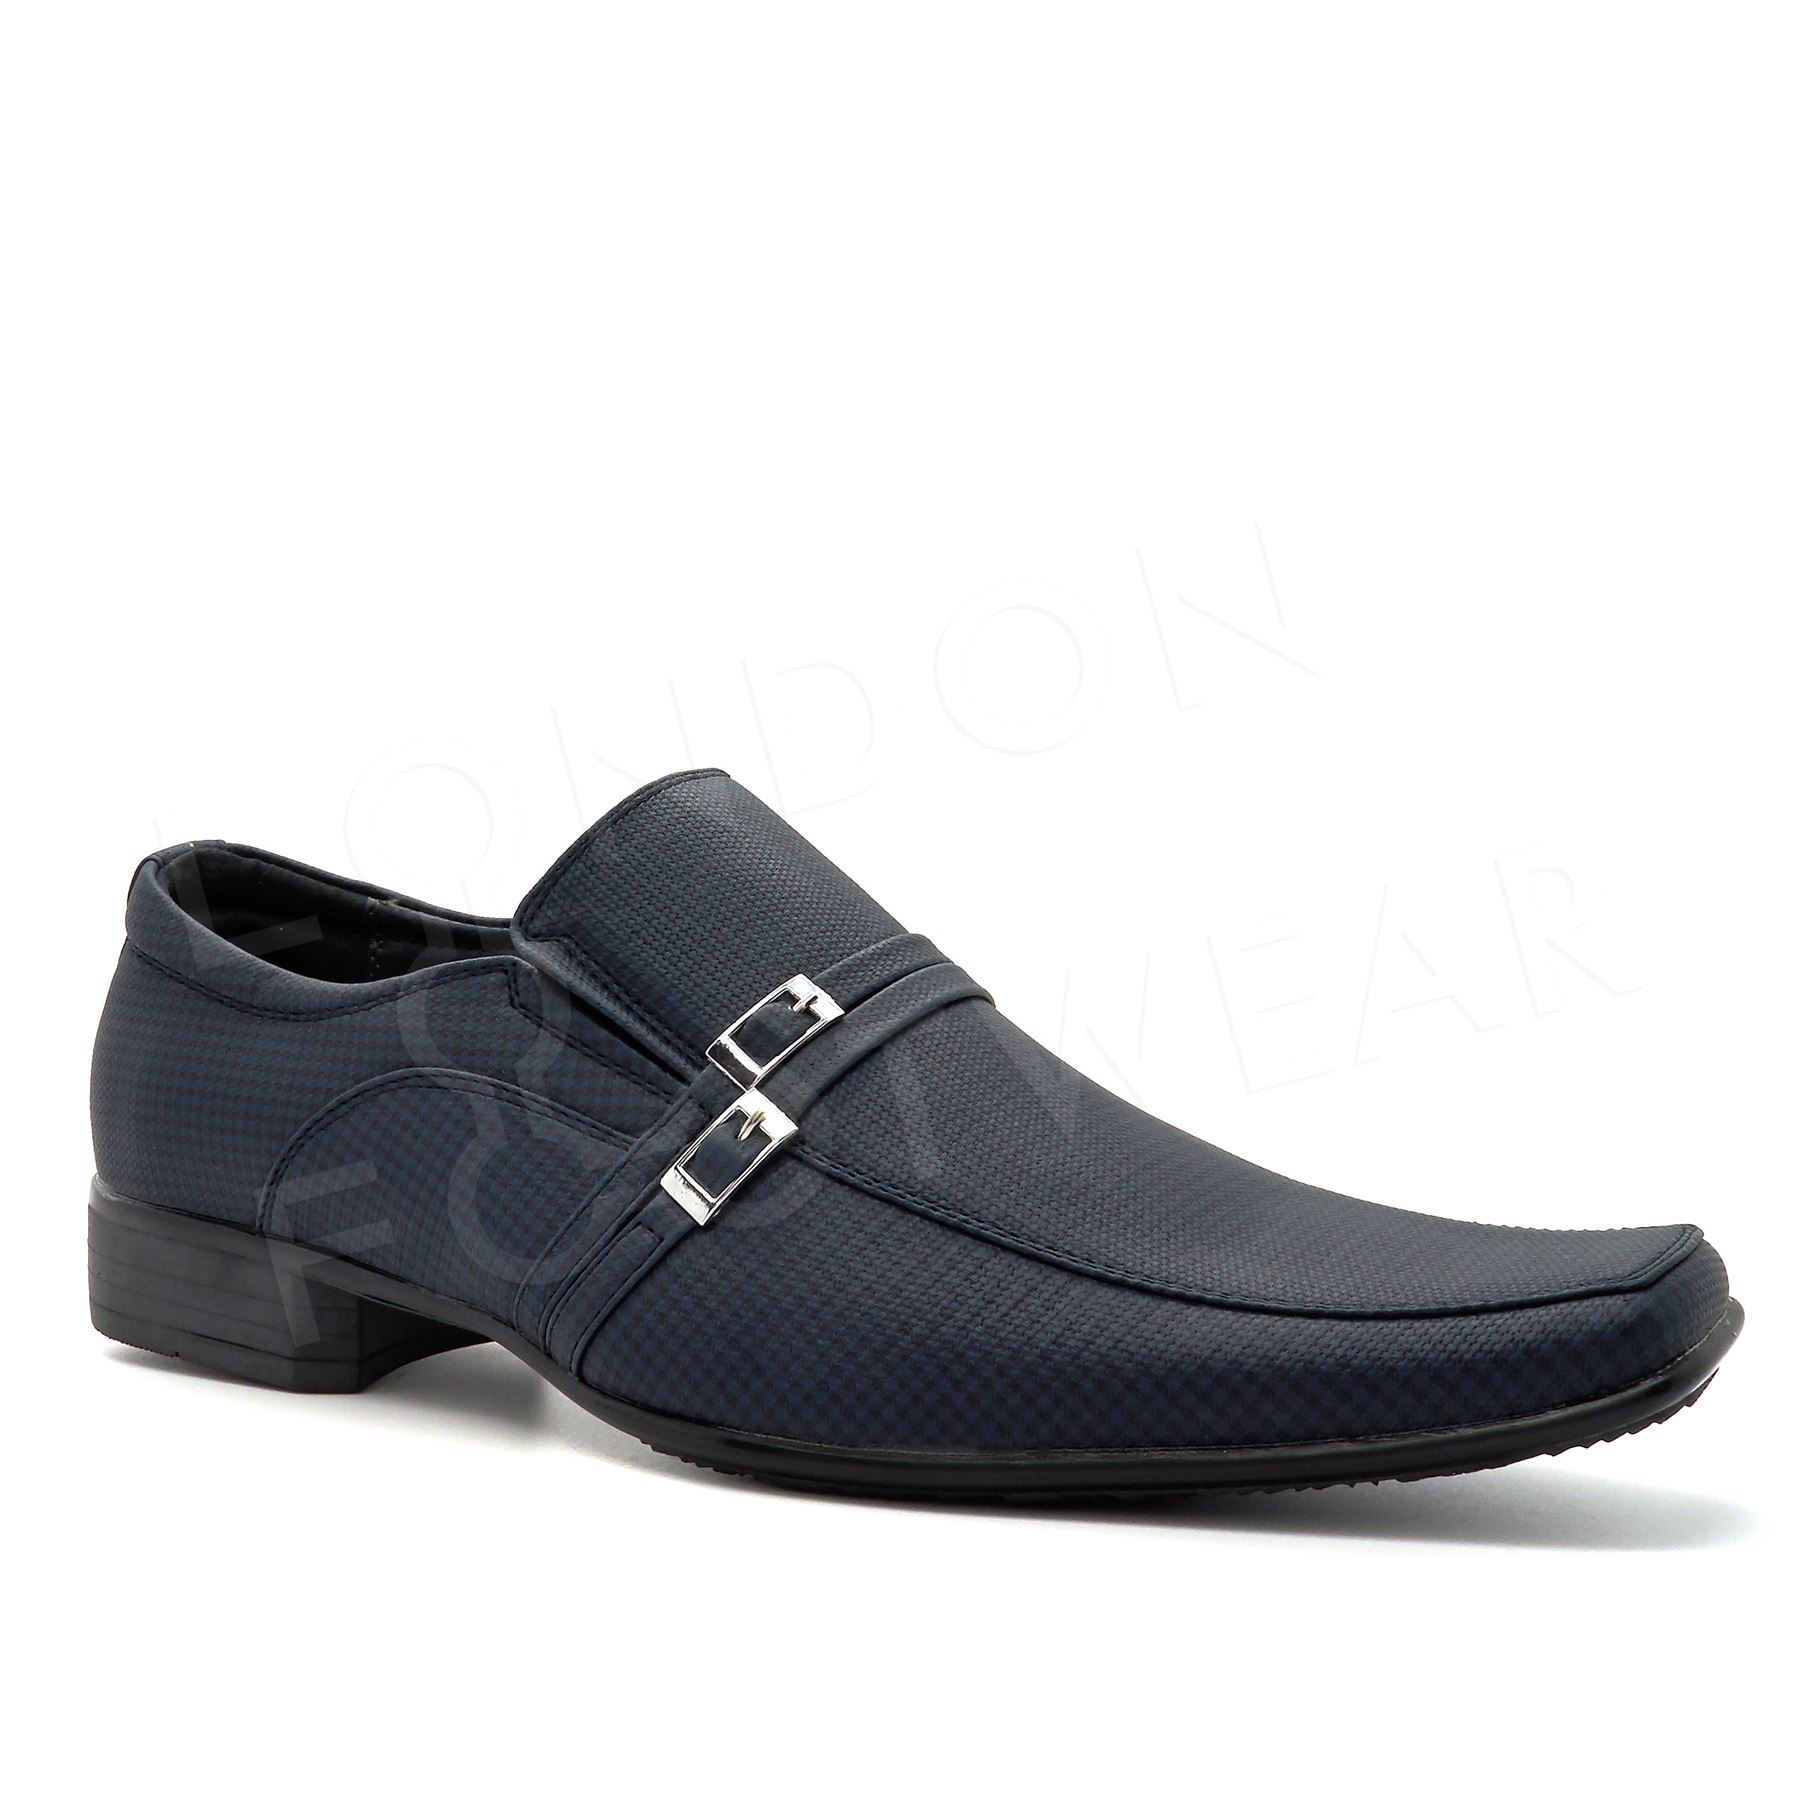 mens new wedding smart dress slip on black formal shoes uk